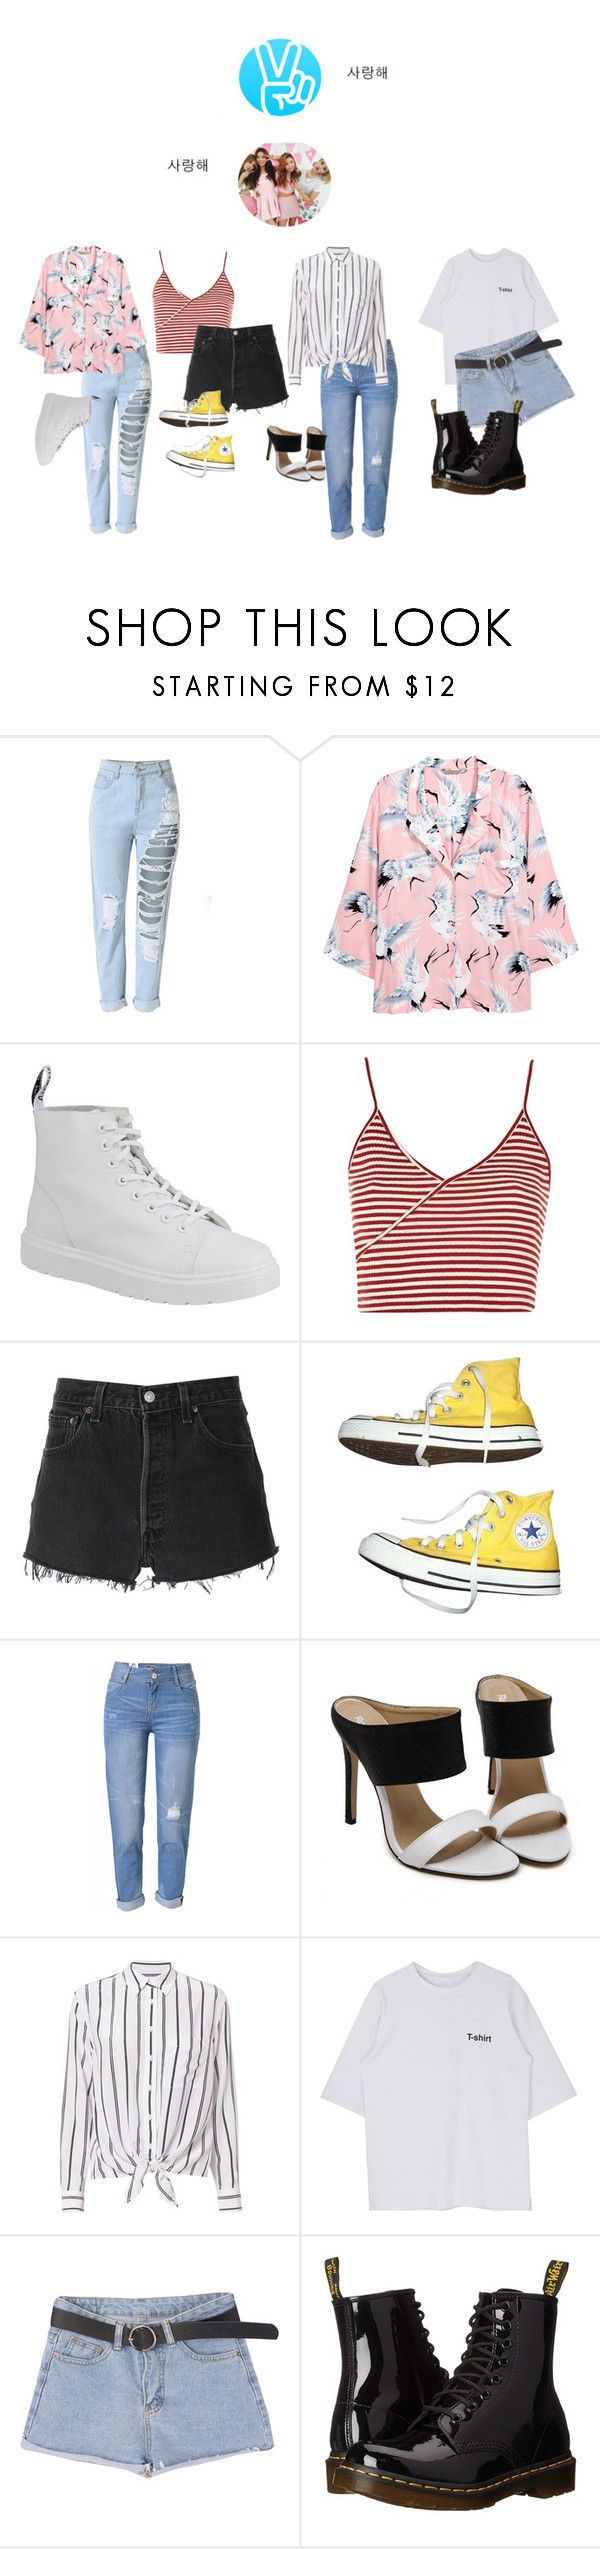 """""""Vlive MV reaction and 16M views"""" by arenbeofficial ❤ liked on Polyvore featuring H&M, Dr. Martens, Topshop, RE/DONE, Converse, WithChic and Equipment"""